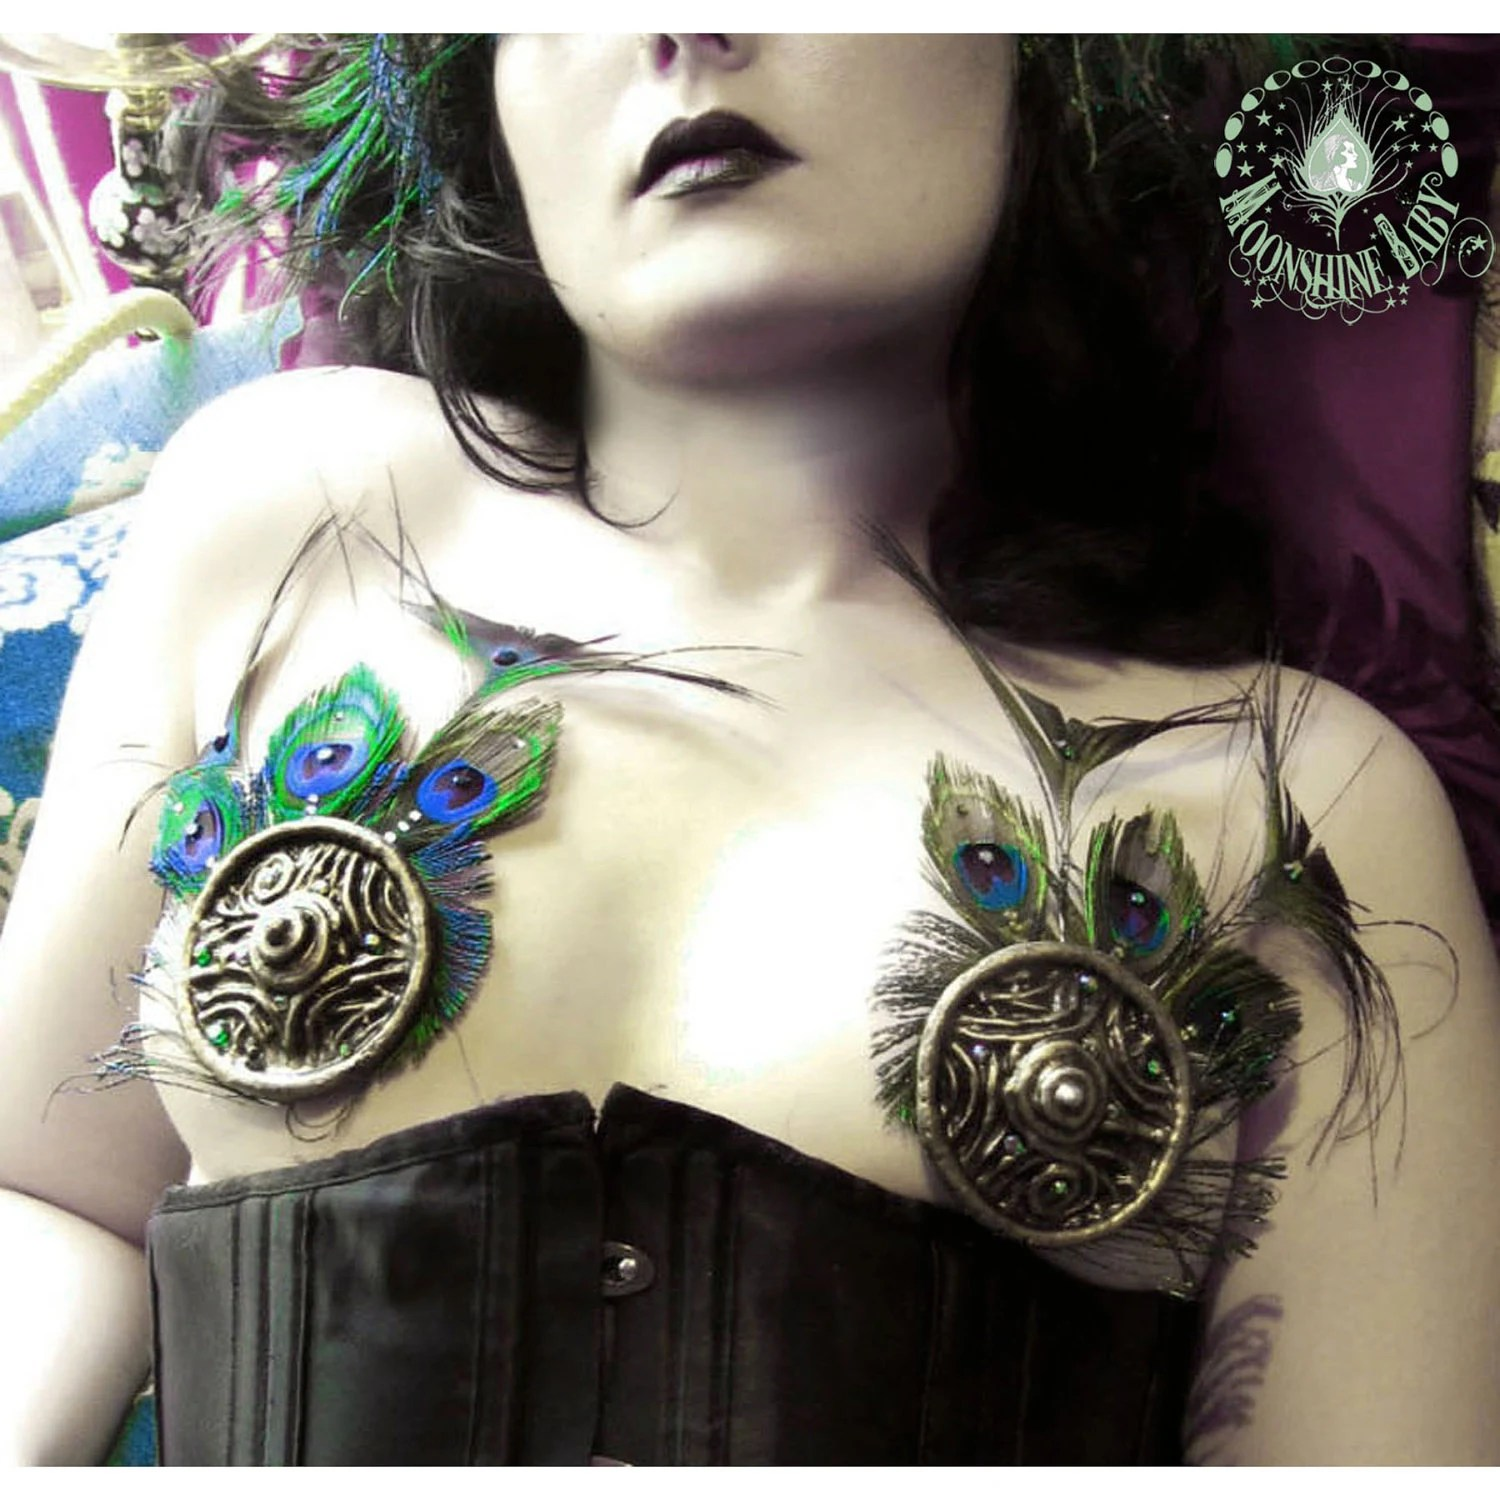 Art Nouveau Filigree Feather Pasties - Gold w/ Peacock Feathers and Swarovski Crystals - By Organic Armor & Moonshine Baby